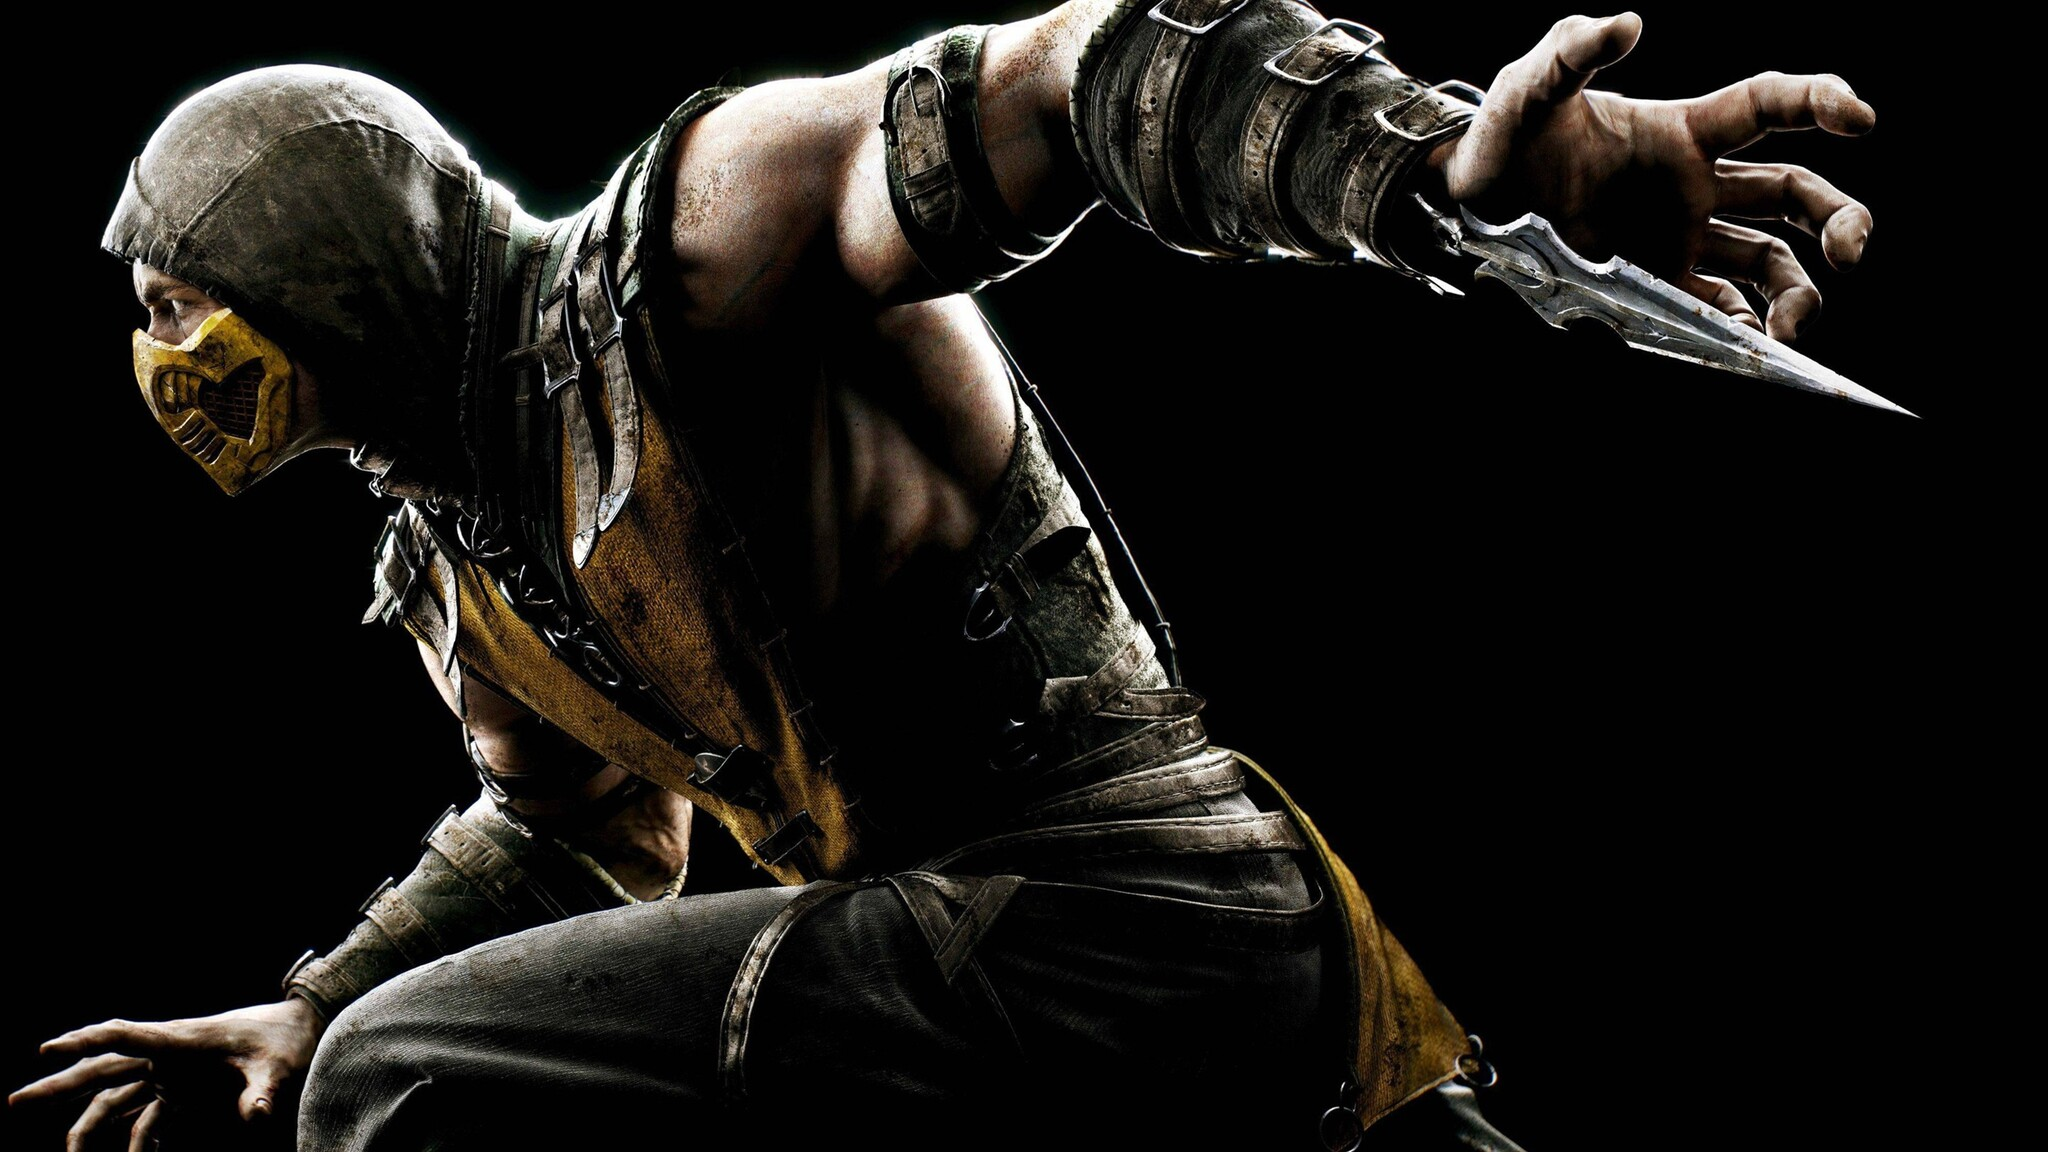 2048x1152 mortal kombat x scorpion 2048x1152 resolution hd 4k